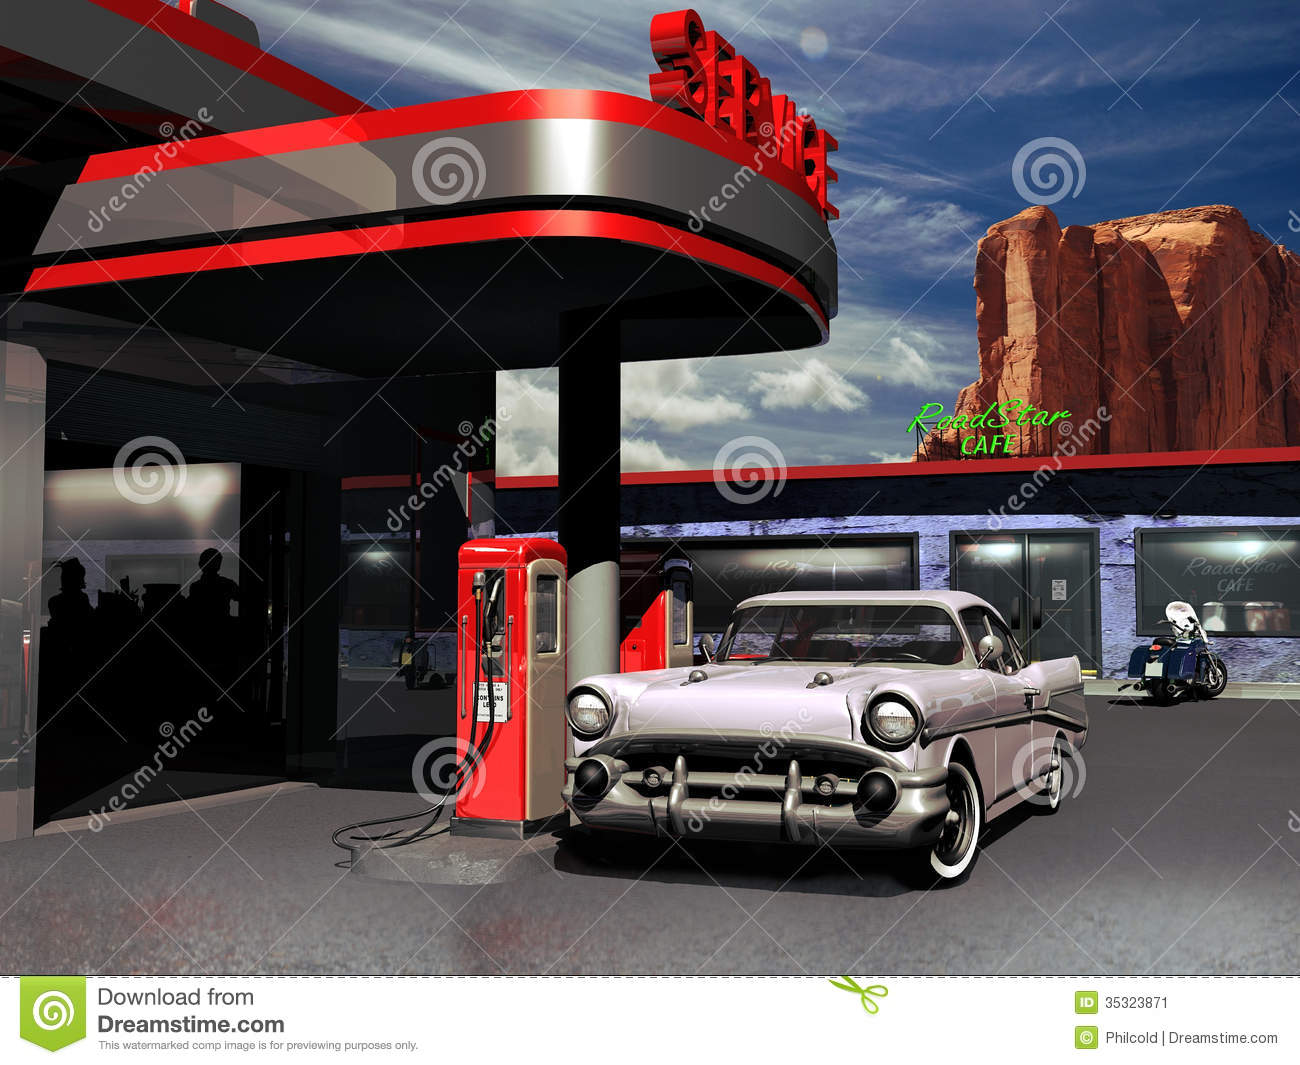 Stock Images Grunge Bank Vault Image2608164 as well Lincoln Mkz also Stock Image Retro Gas Station Sixties Car Outside Foreground Road Cafe Motorcycle Close To Image35323871 also Fly Girls Nail Art Takes Off also Tory Burch Lonnie Canvas Backpack Tory Navyvachetta. on american retro interior